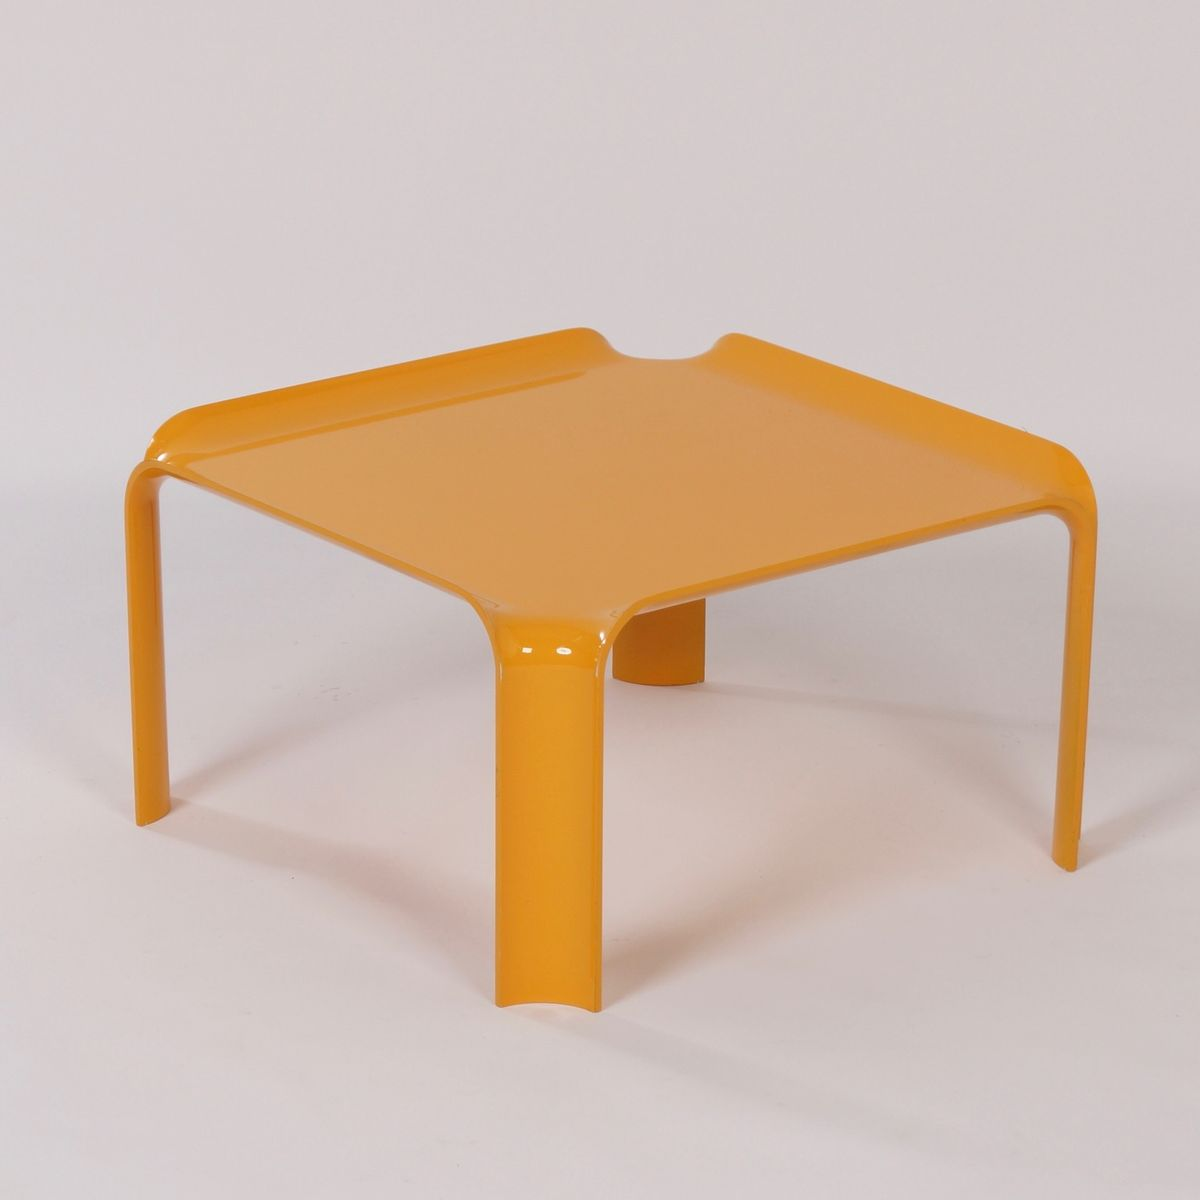 small yellow 877 coffee table by pierre paulin for artifort 1960s for sale at pamono. Black Bedroom Furniture Sets. Home Design Ideas